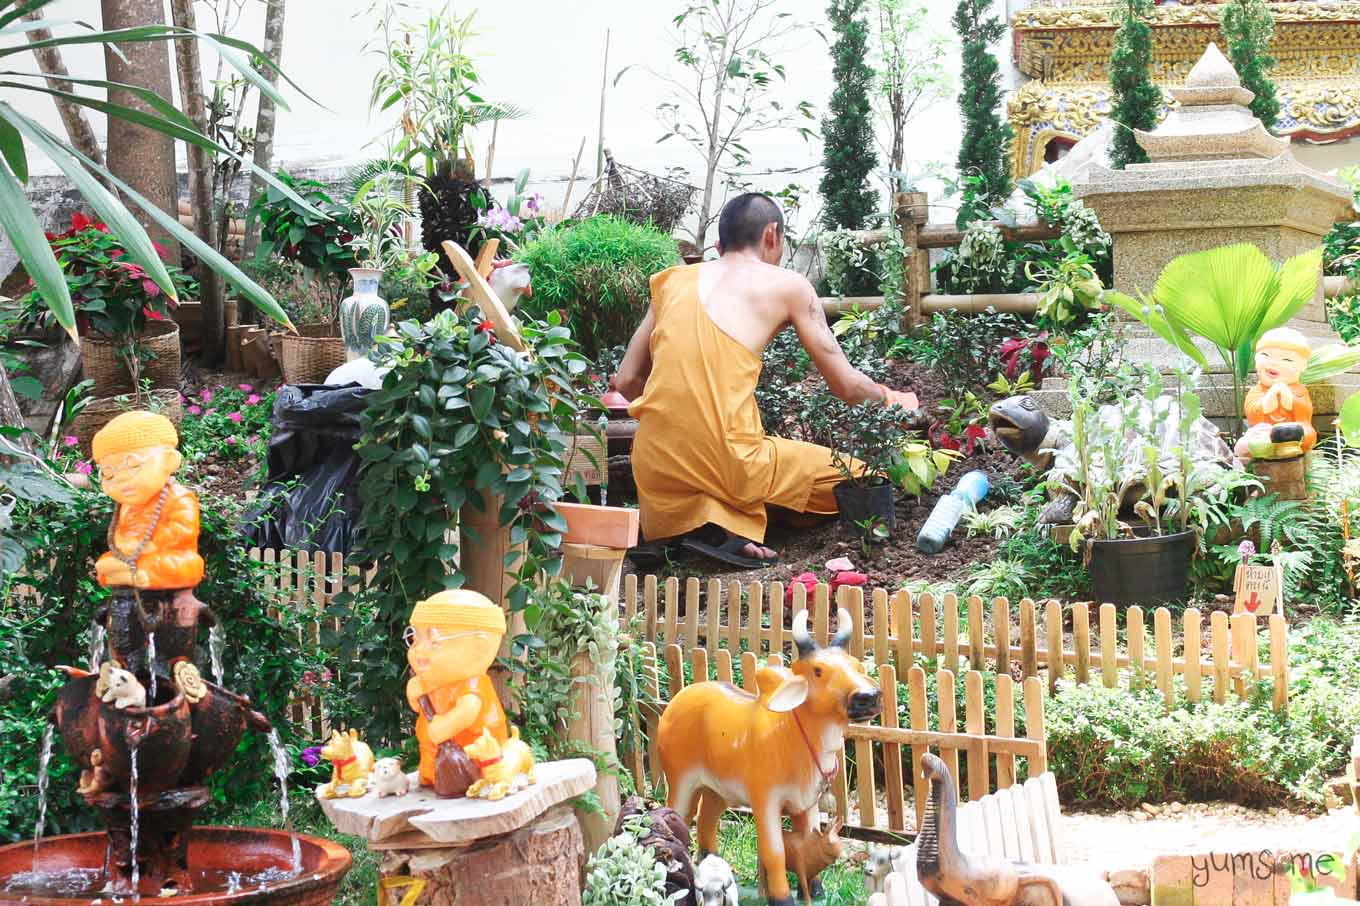 A Buddhist monk gardening, surrounded by cute Thai Buddhist garden ornaments.